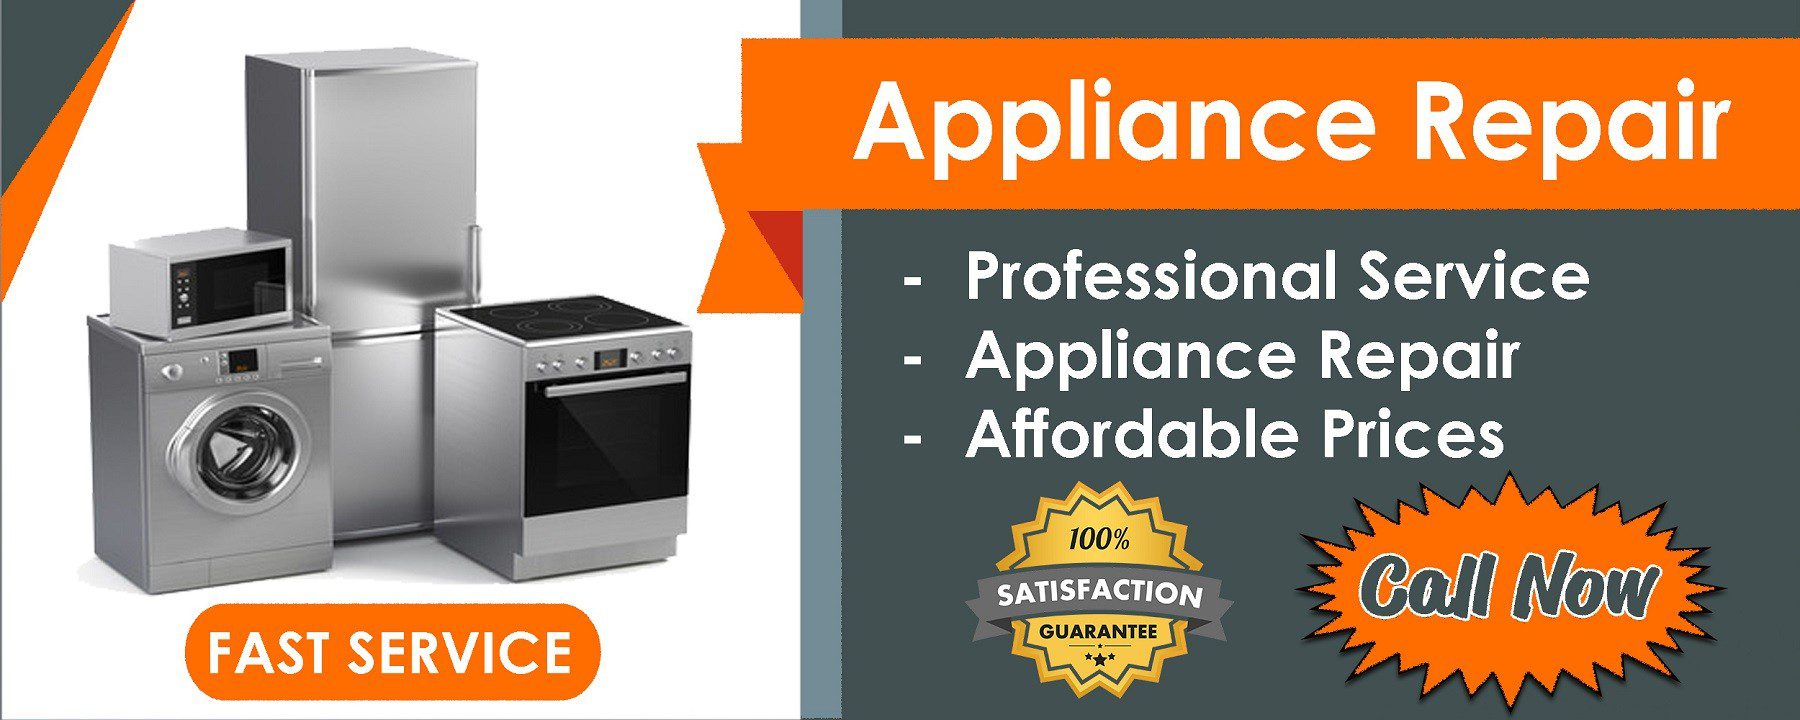 appliance-repair-service-list banner